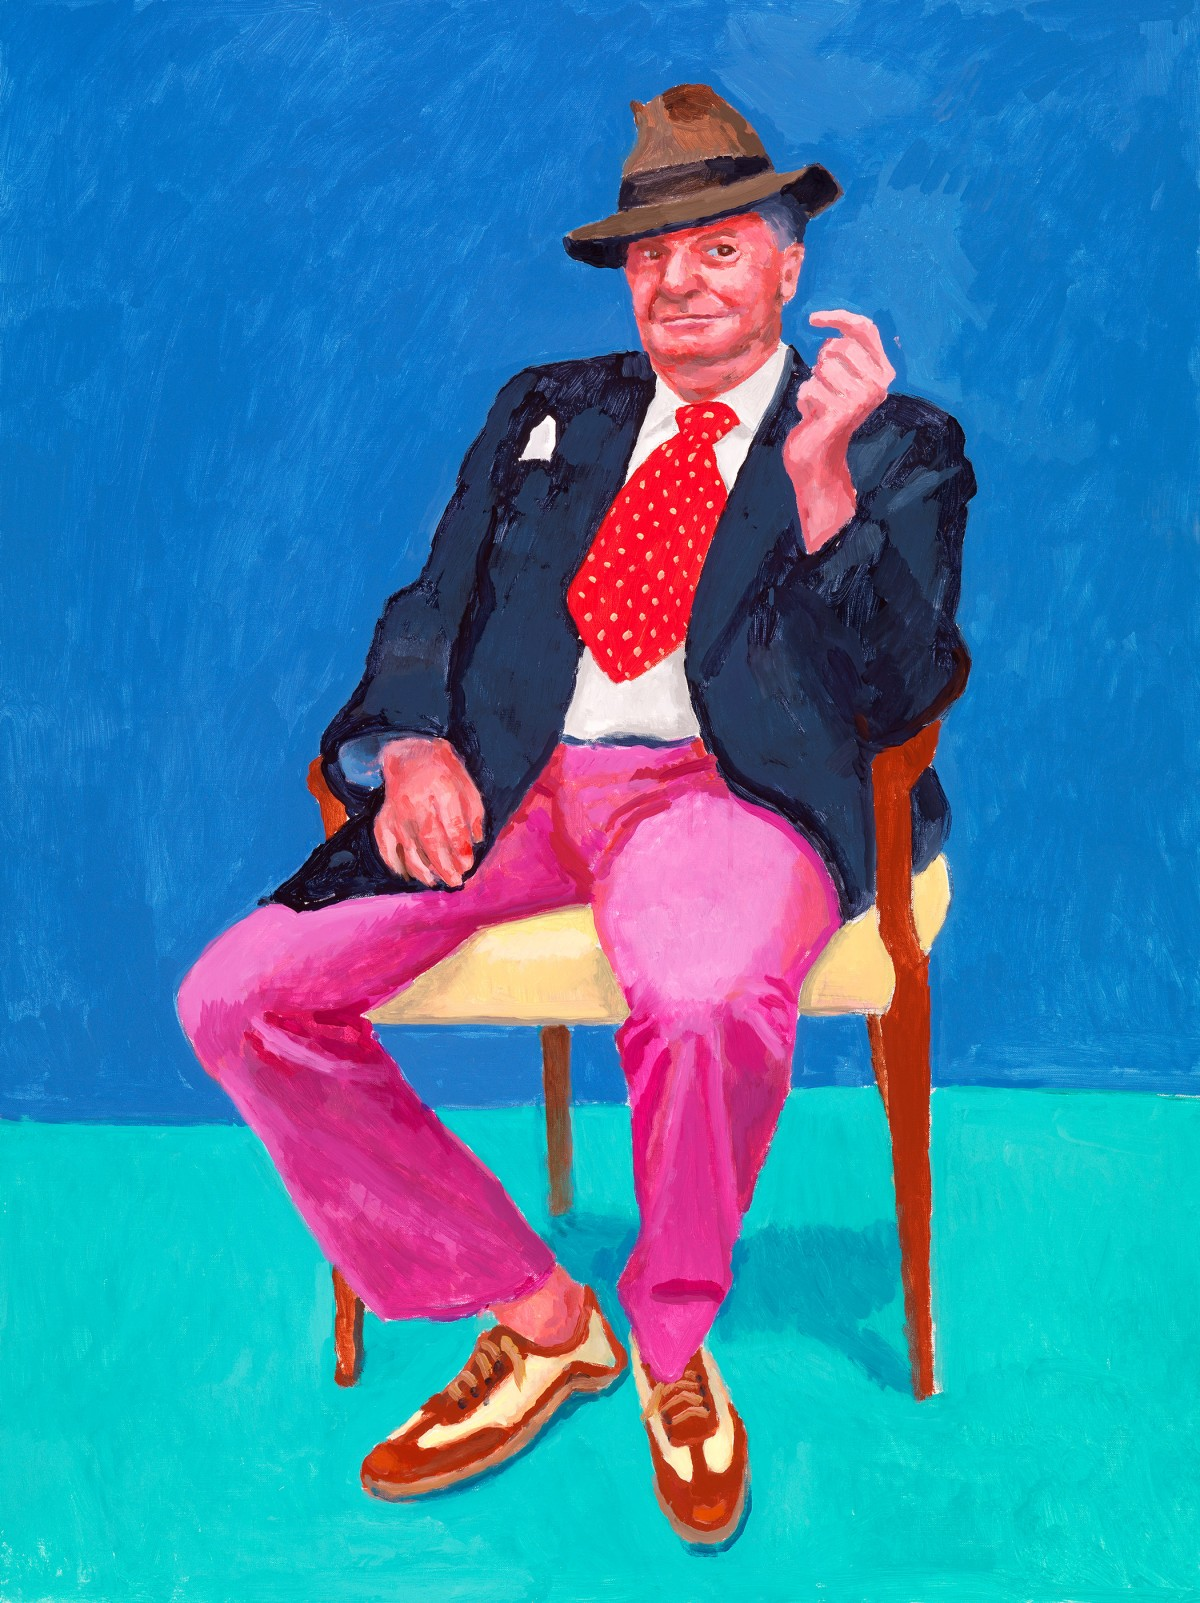 Image: David Hockney, Barry Humphries, 26th, 27th, 28th March 2015 from 82 Portraits and 1 Still-life, 2015